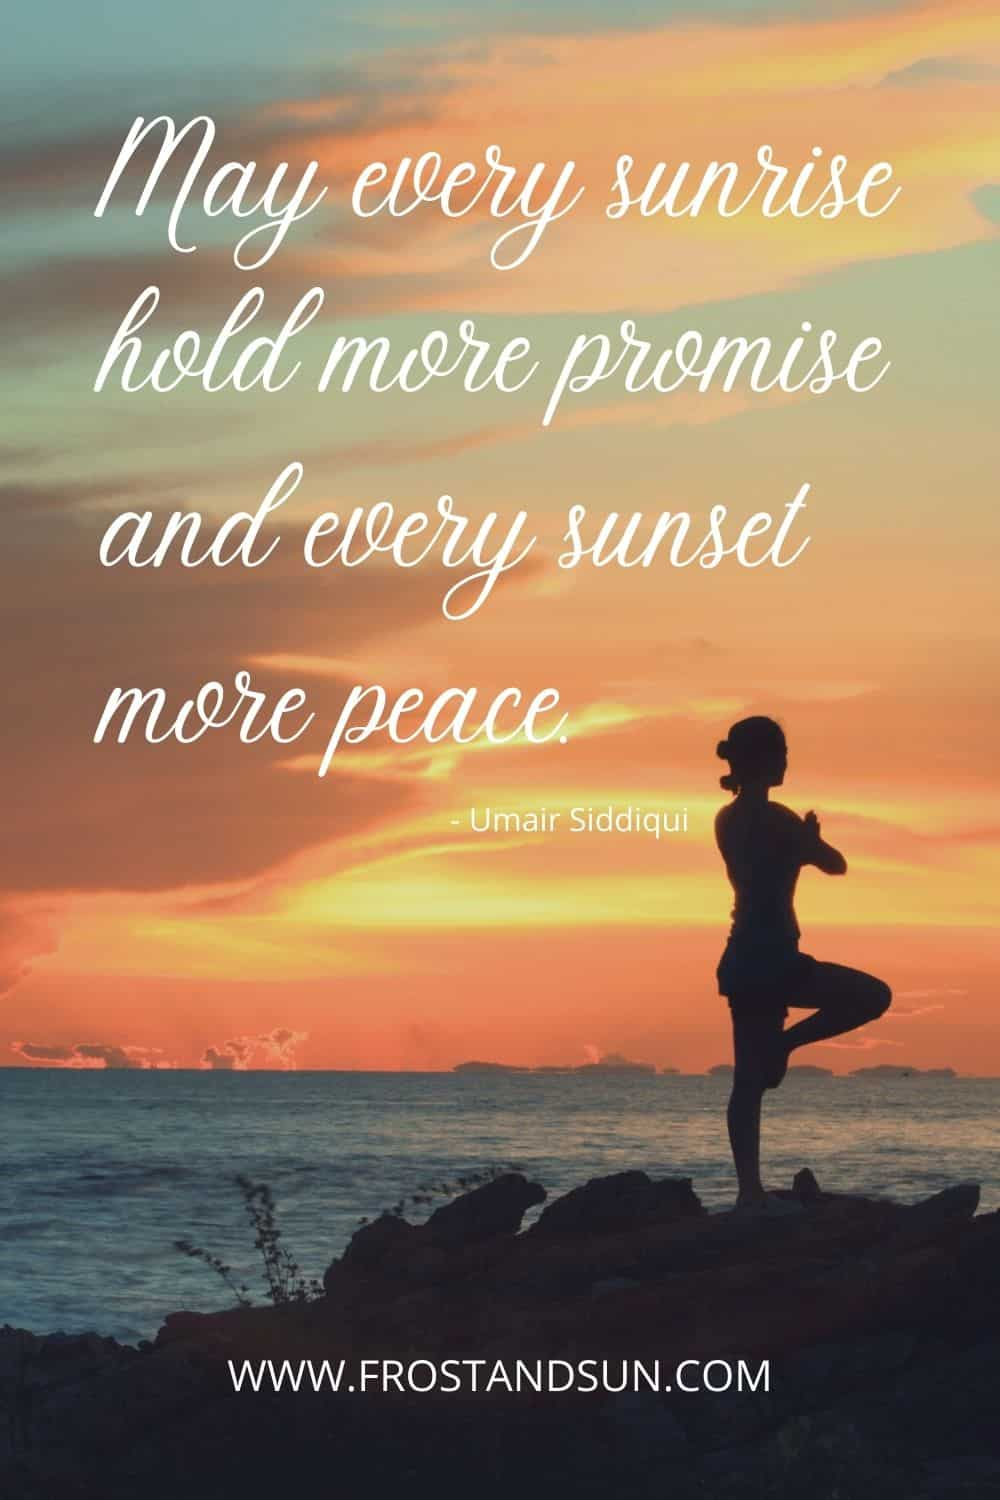 Black silhouette of a woman doing yoga during sunset. To the left reads: May every sunrise hold more promise and every sunset more peace.